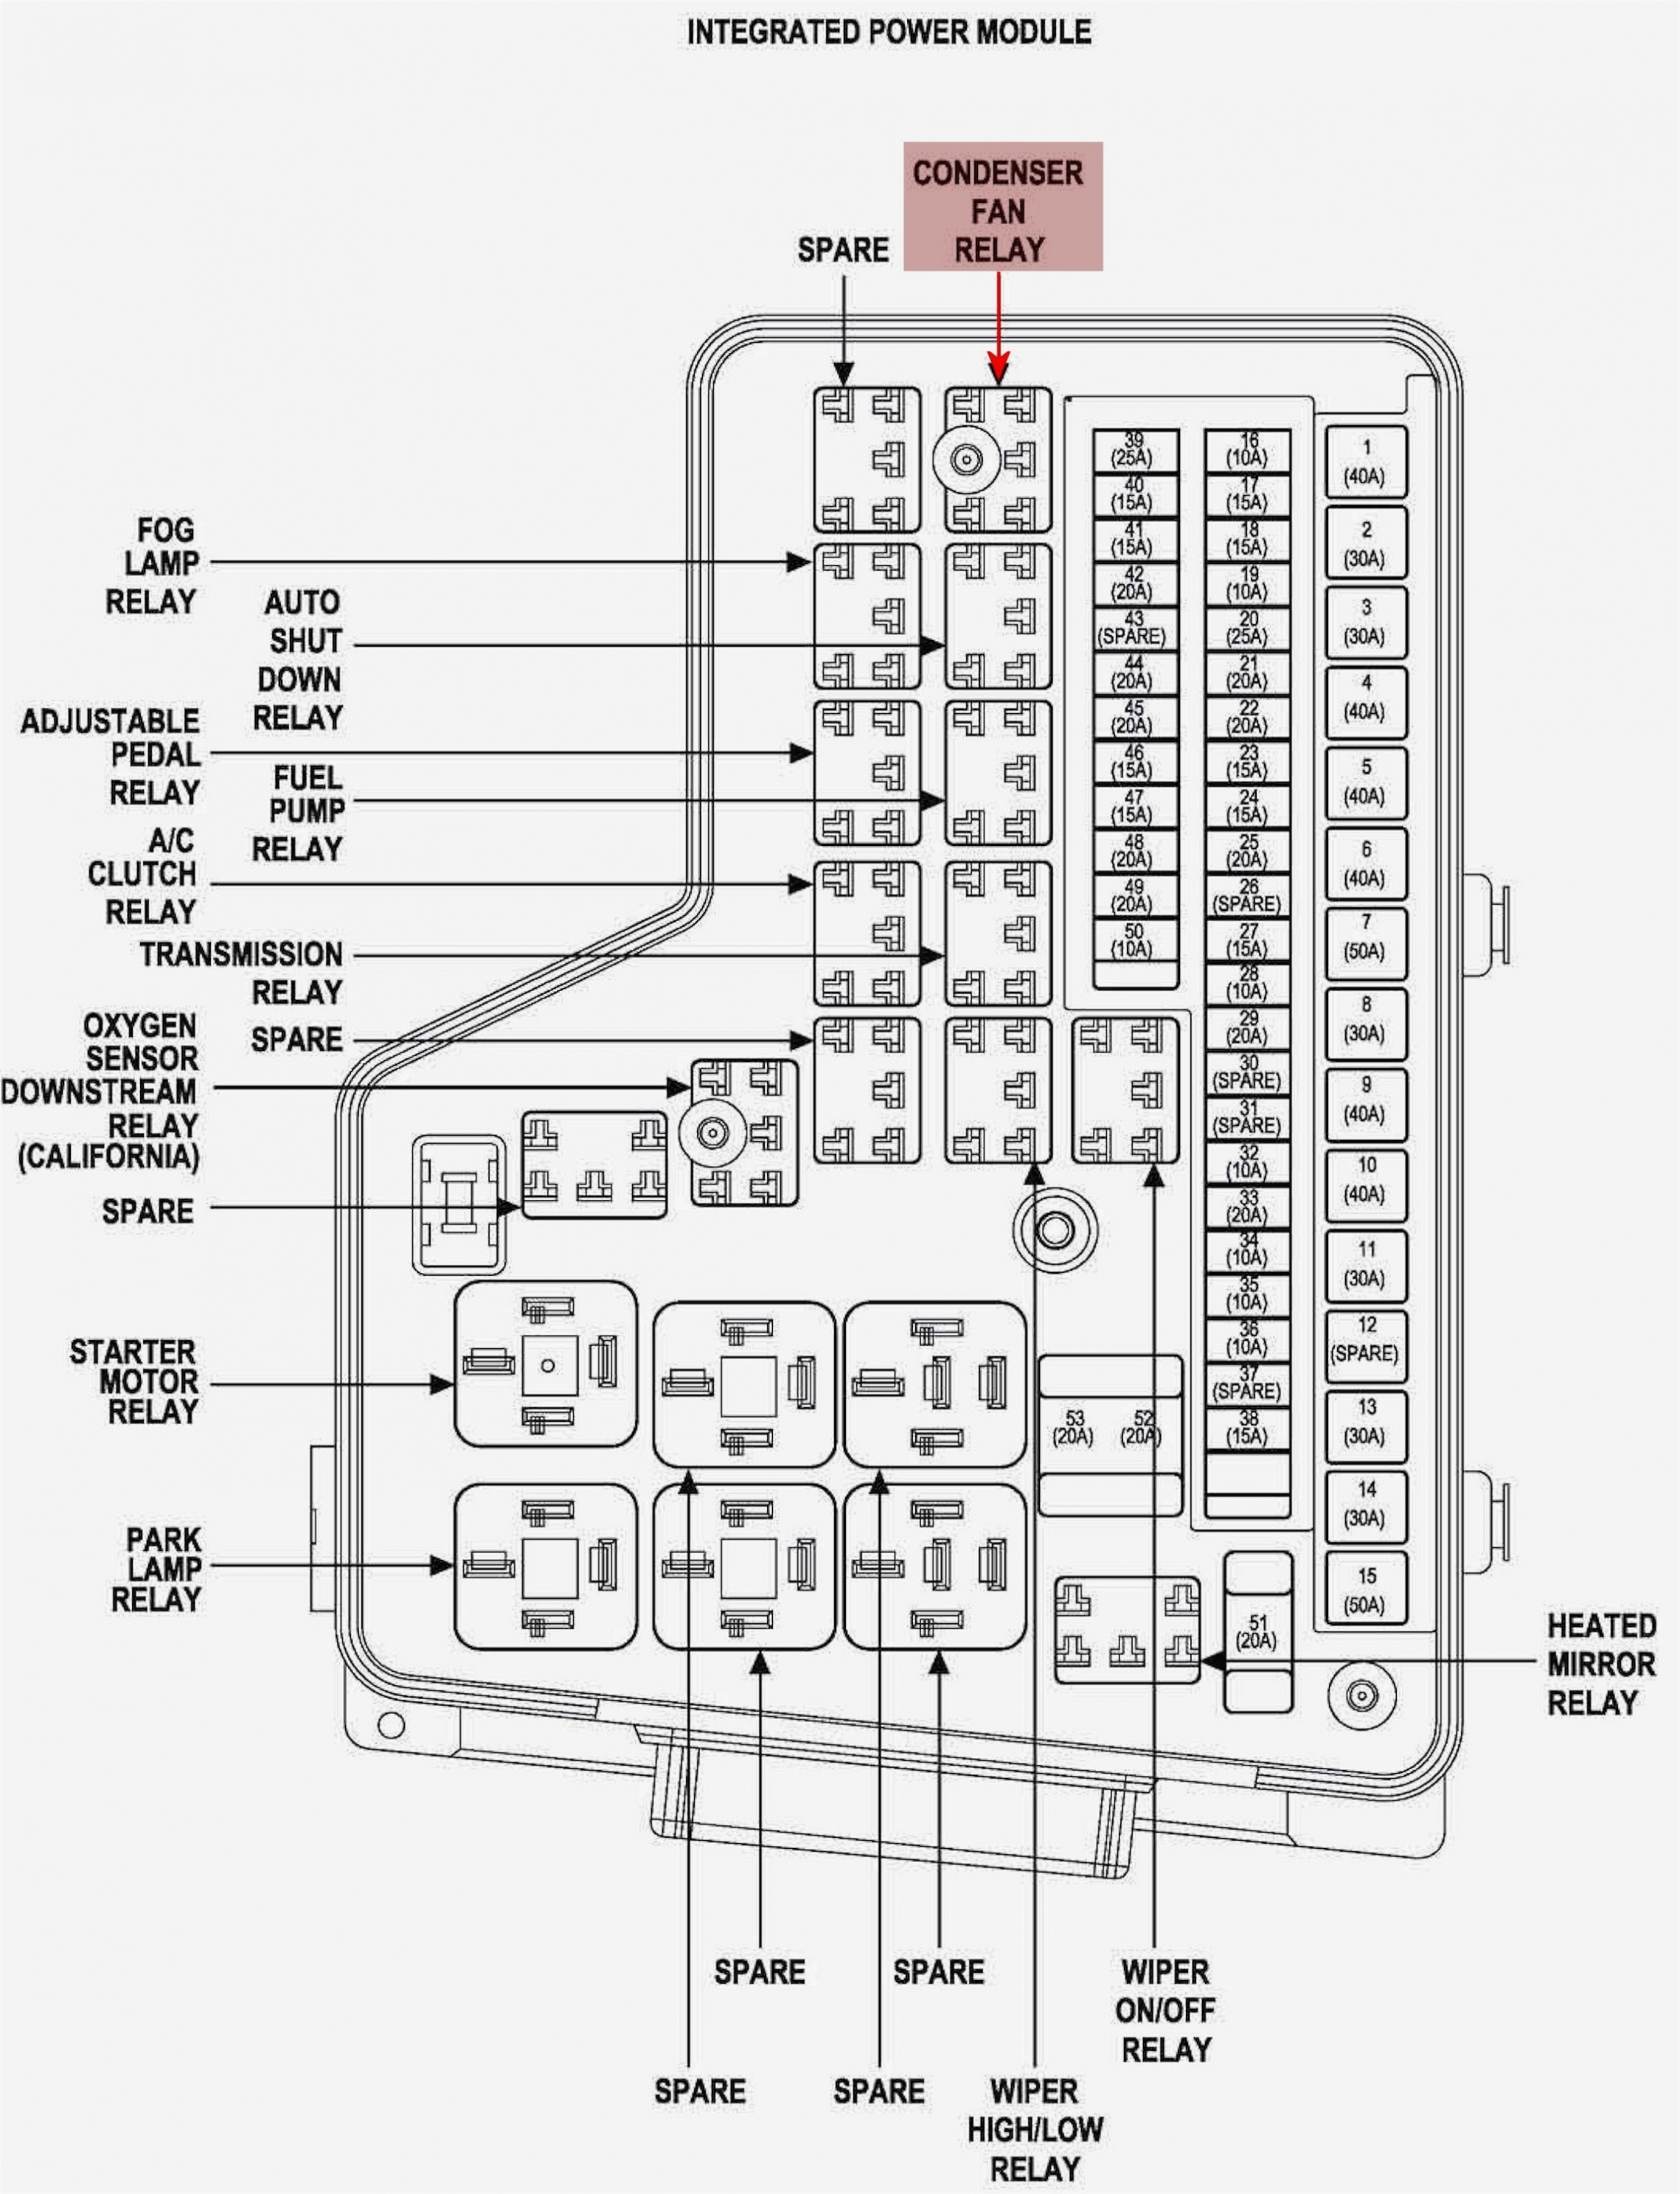 12 Volt Fuse Block Wiring Diagram from i2.wp.com